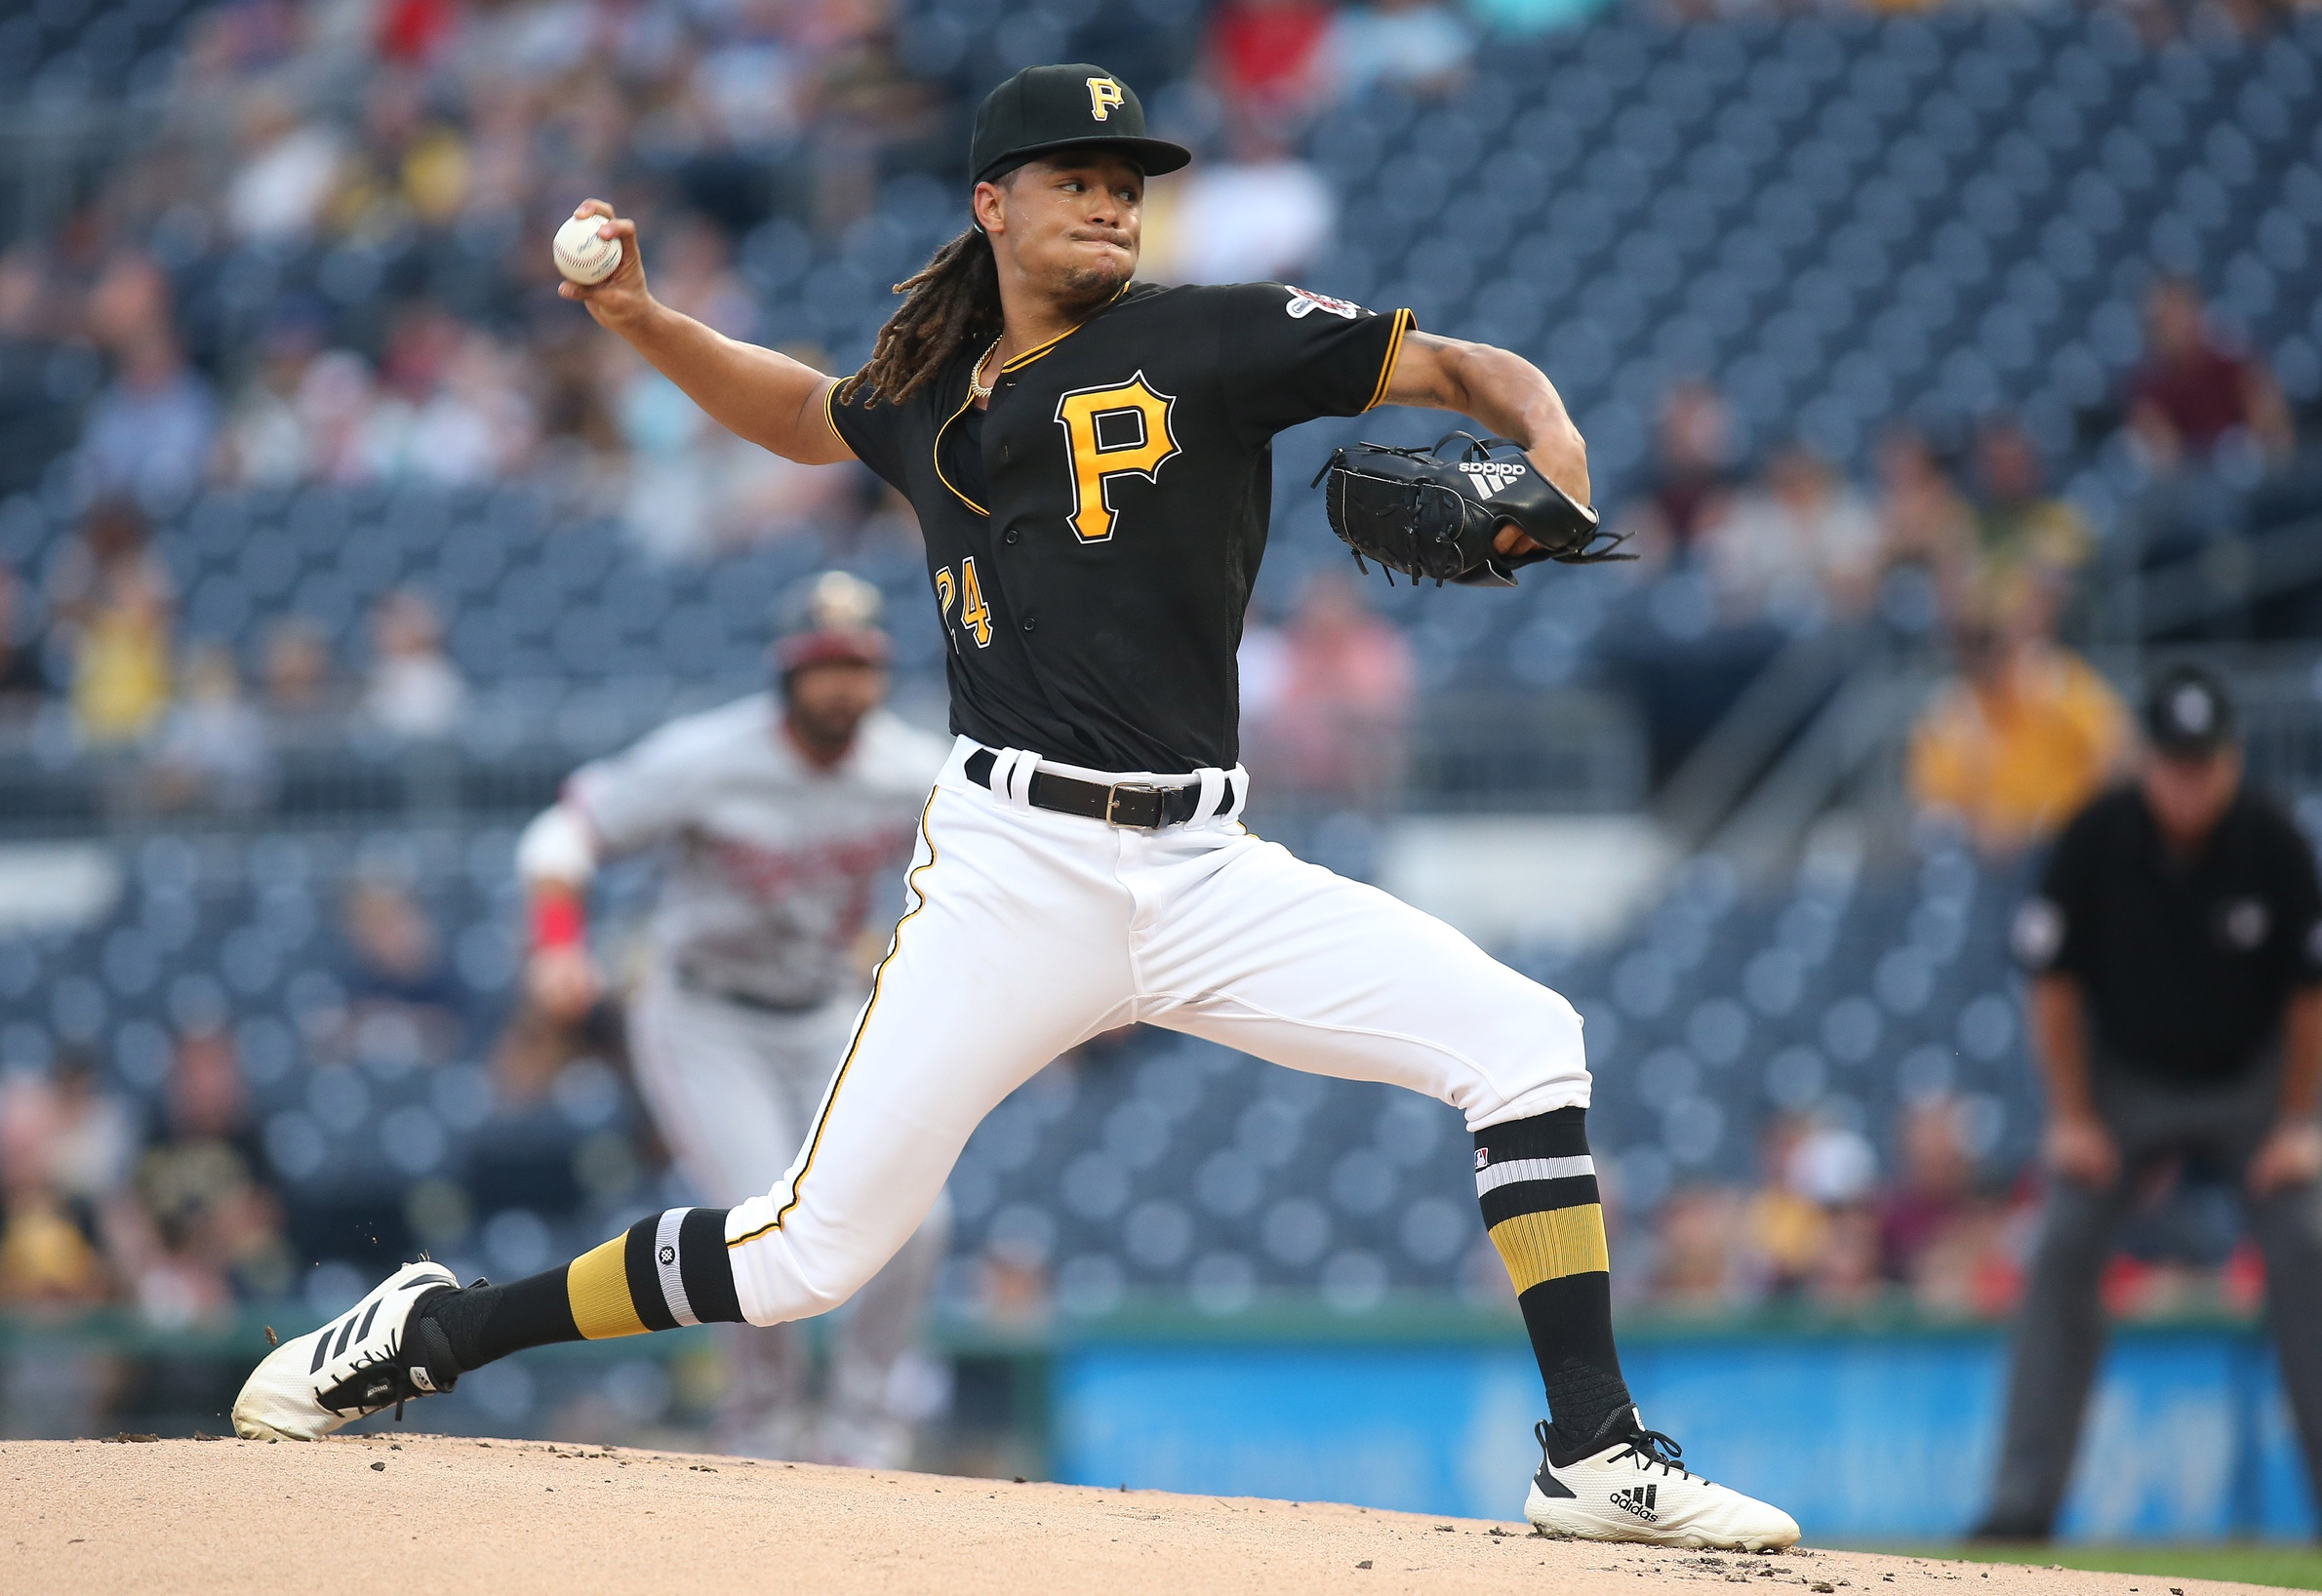 Chris Archer May be a Potential Trade Target for Mets